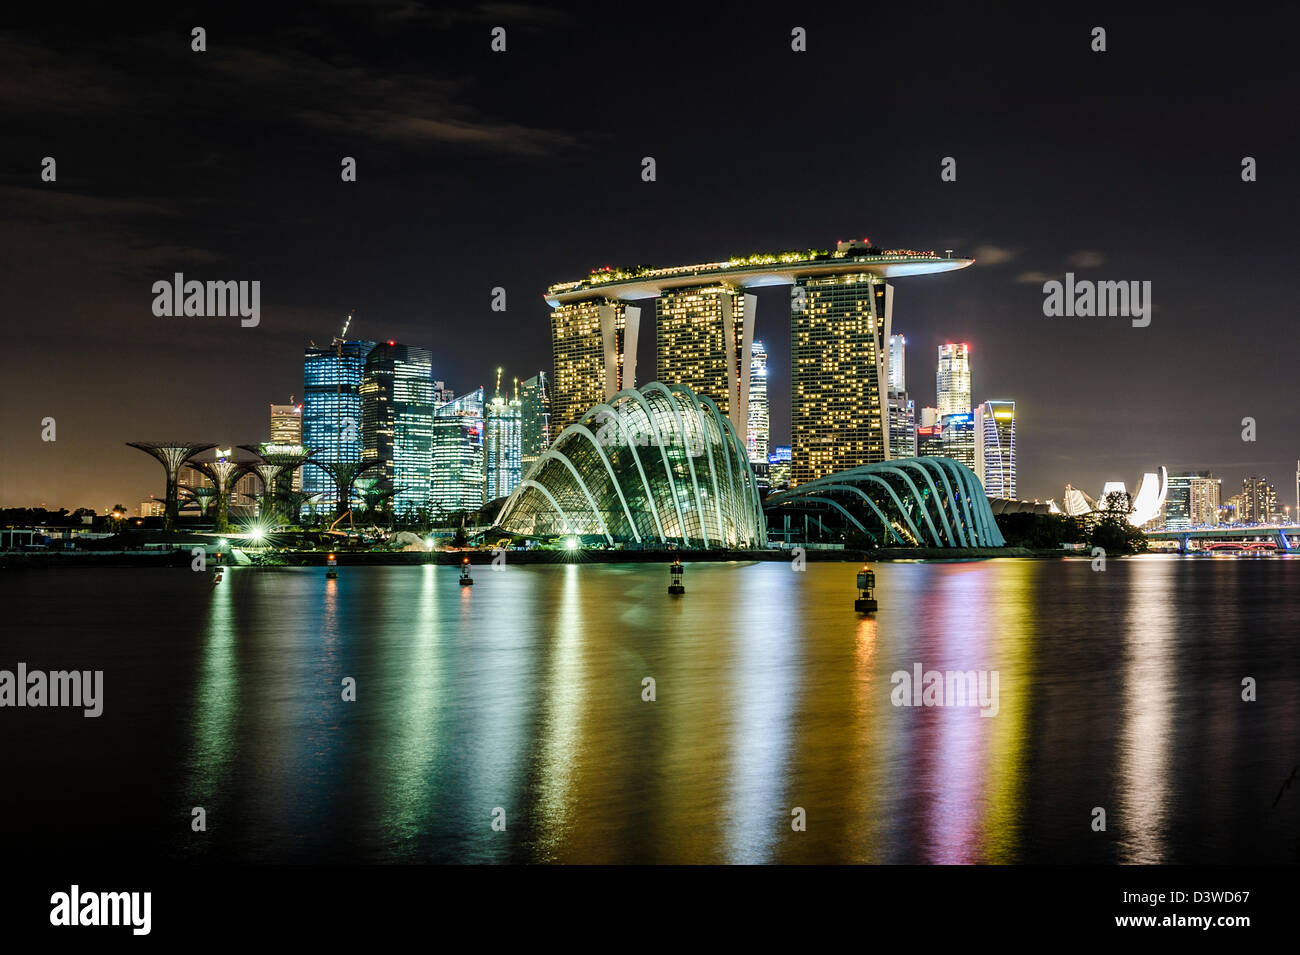 View of the Singapur Marina at night, Asia - Stock Image